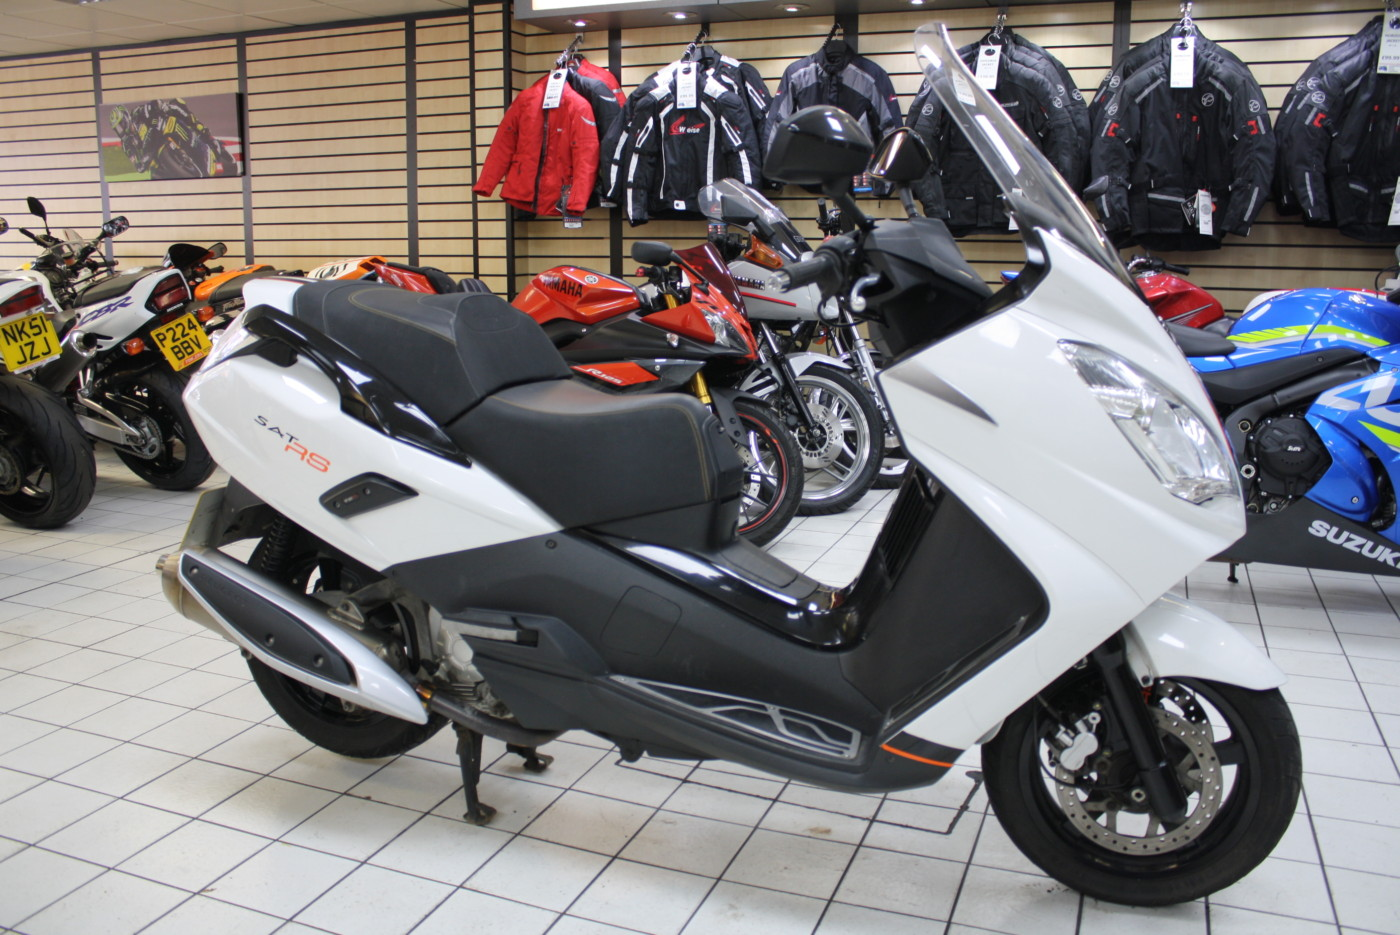 Peugeot Satelis 2 400cc RS